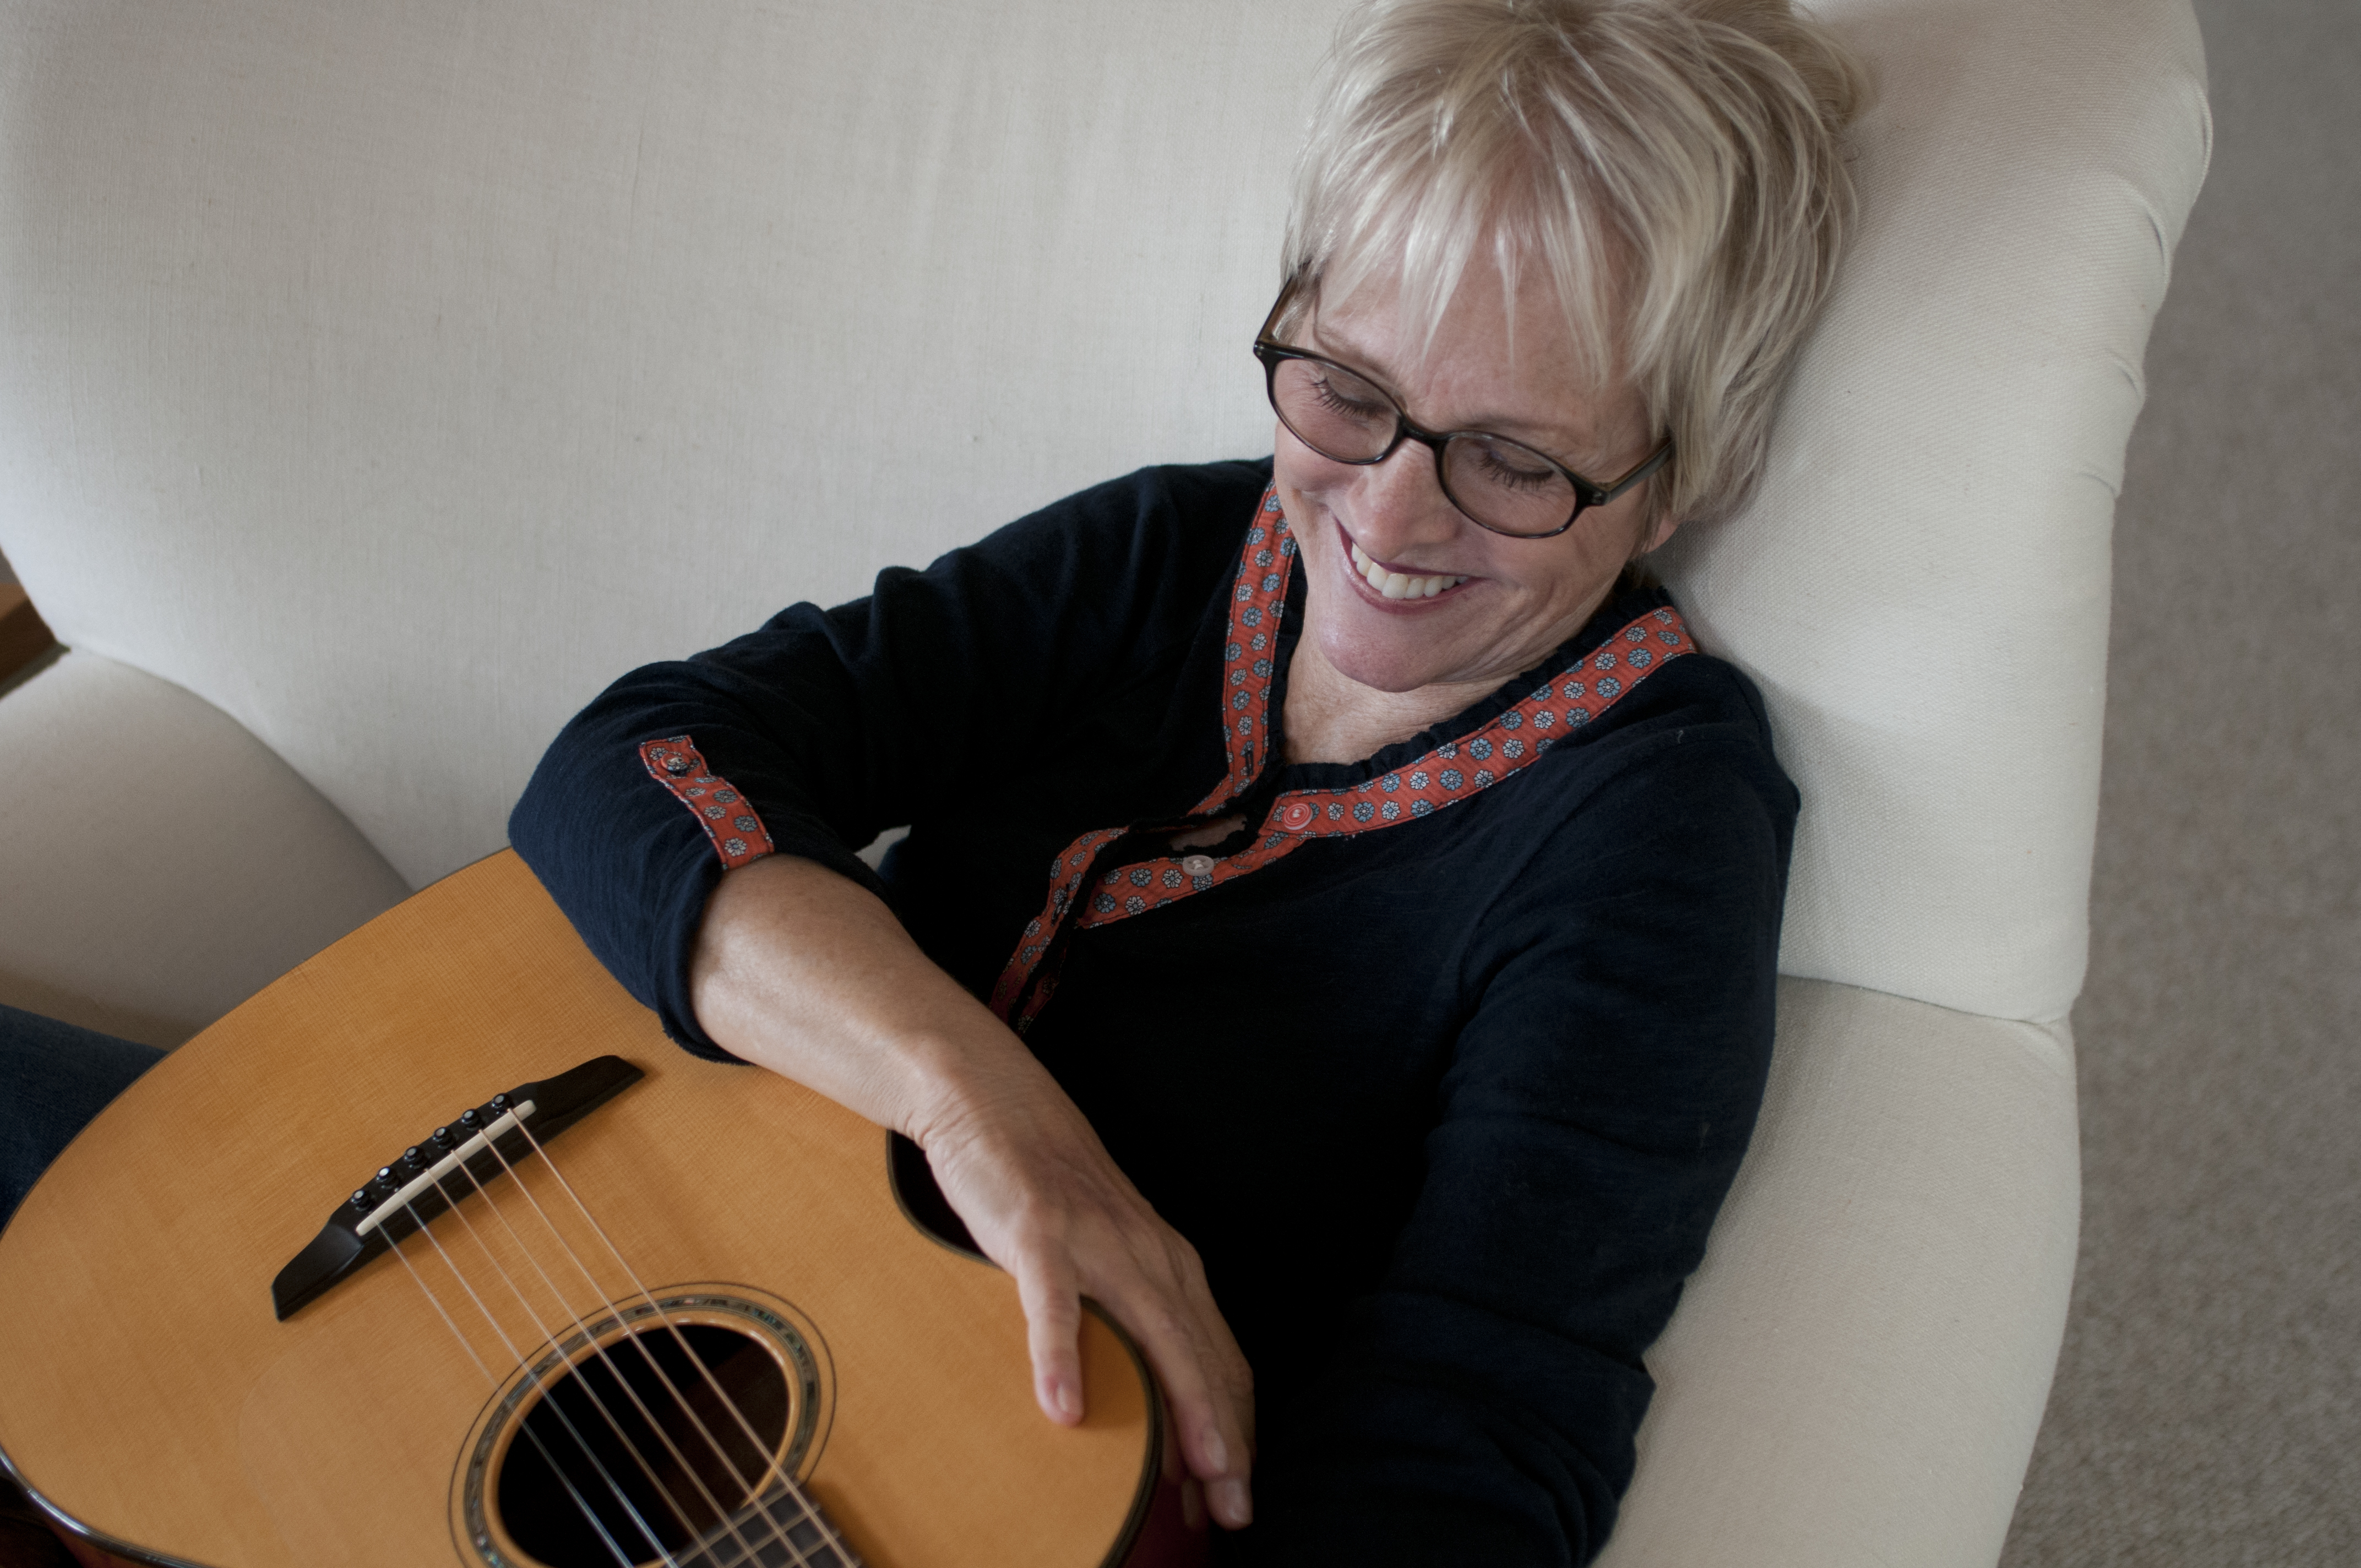 tracy-newman-smiling-from-above-with-guitar